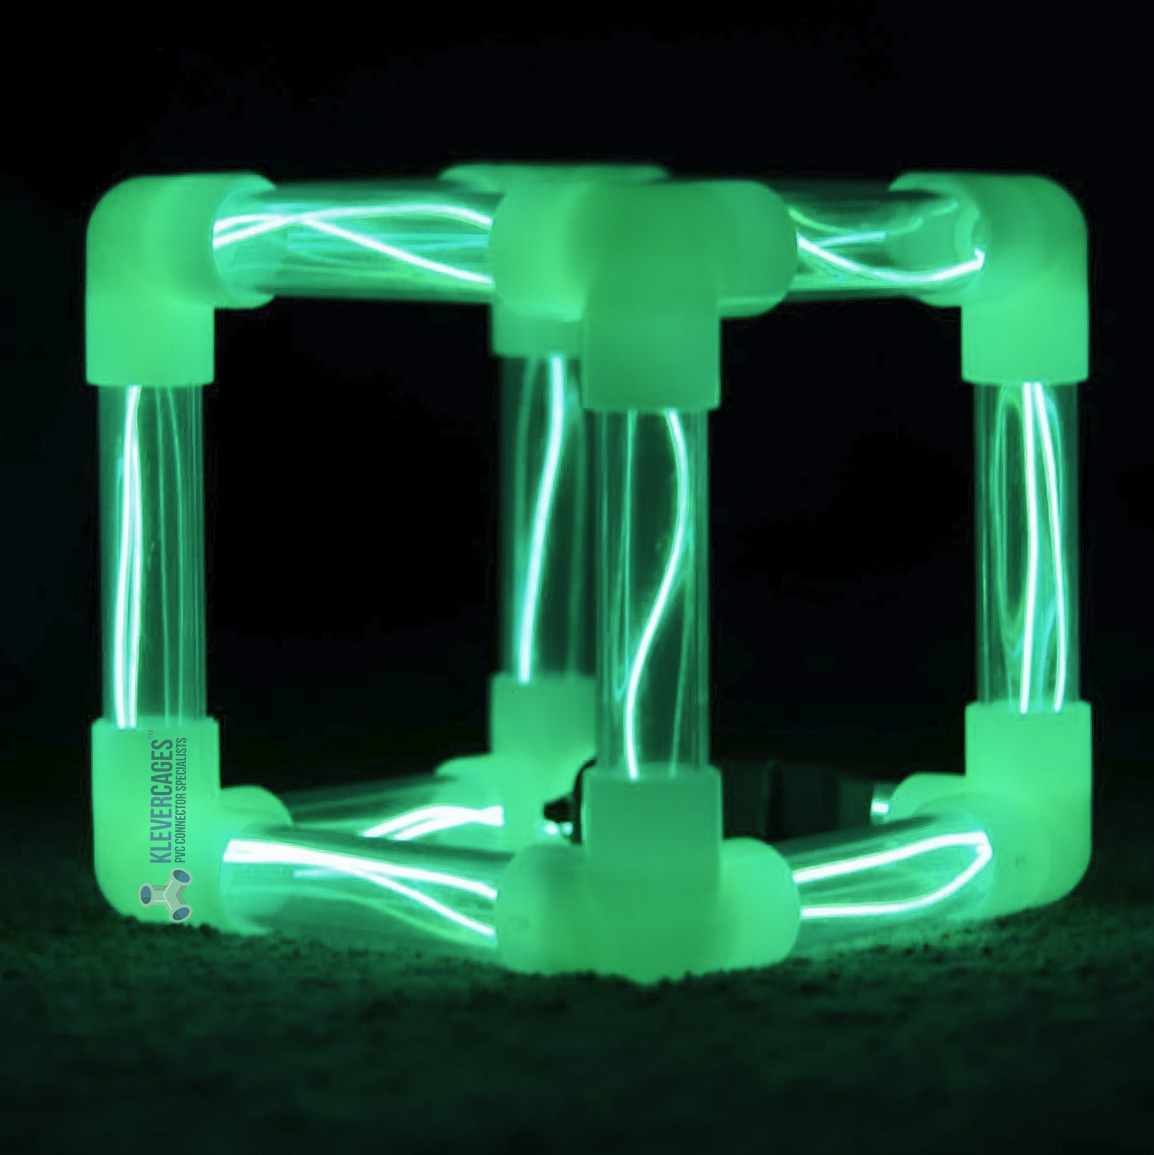 Green glow in the dark cube built with connectors that fit PVC pipe from Klever Cages. Clear pipes inserted with LED lights and glow in the dark 3way connectors